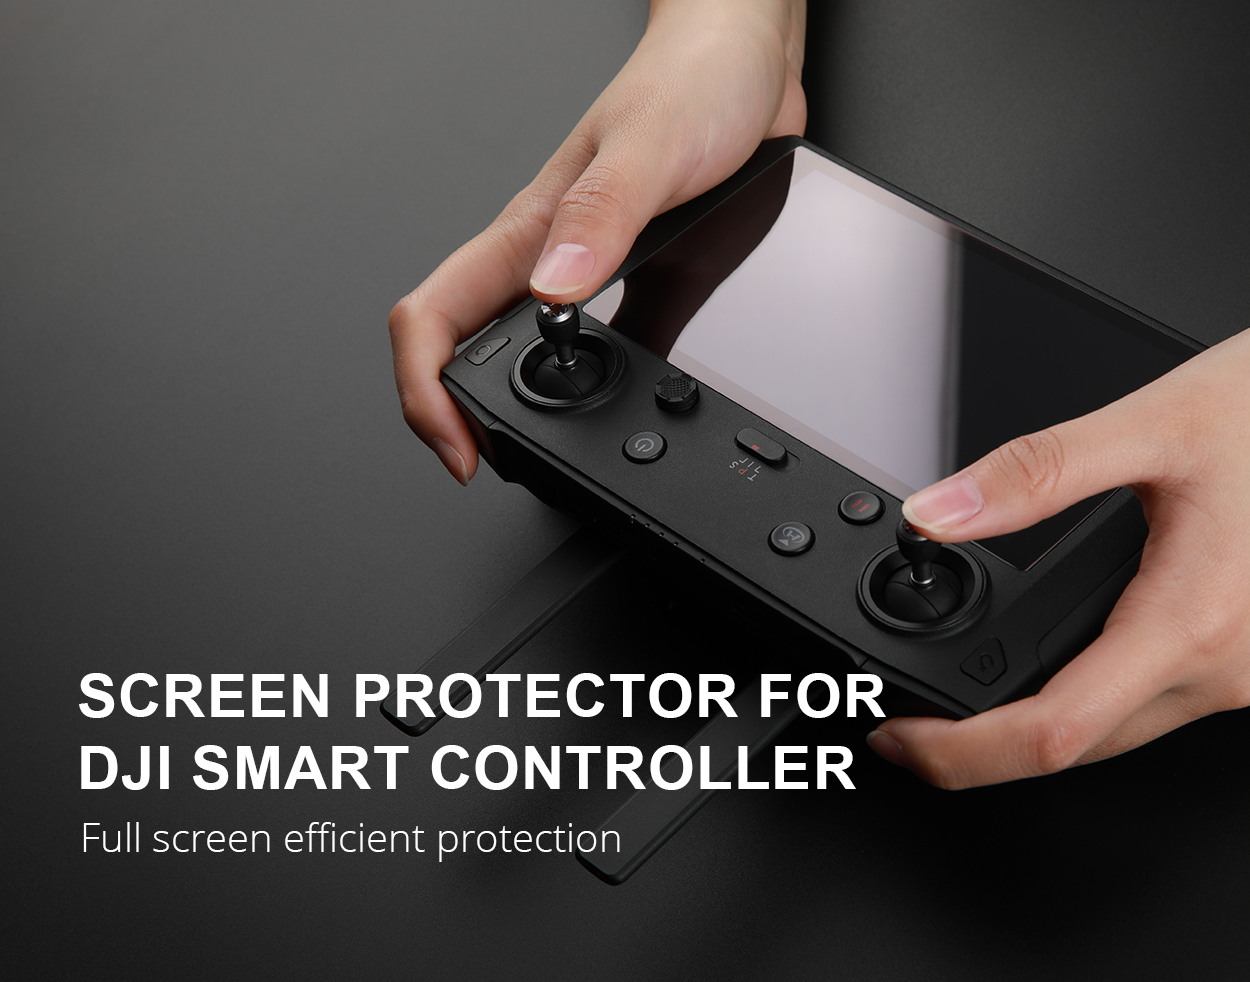 pgy-sc-screen-protector1.jpg